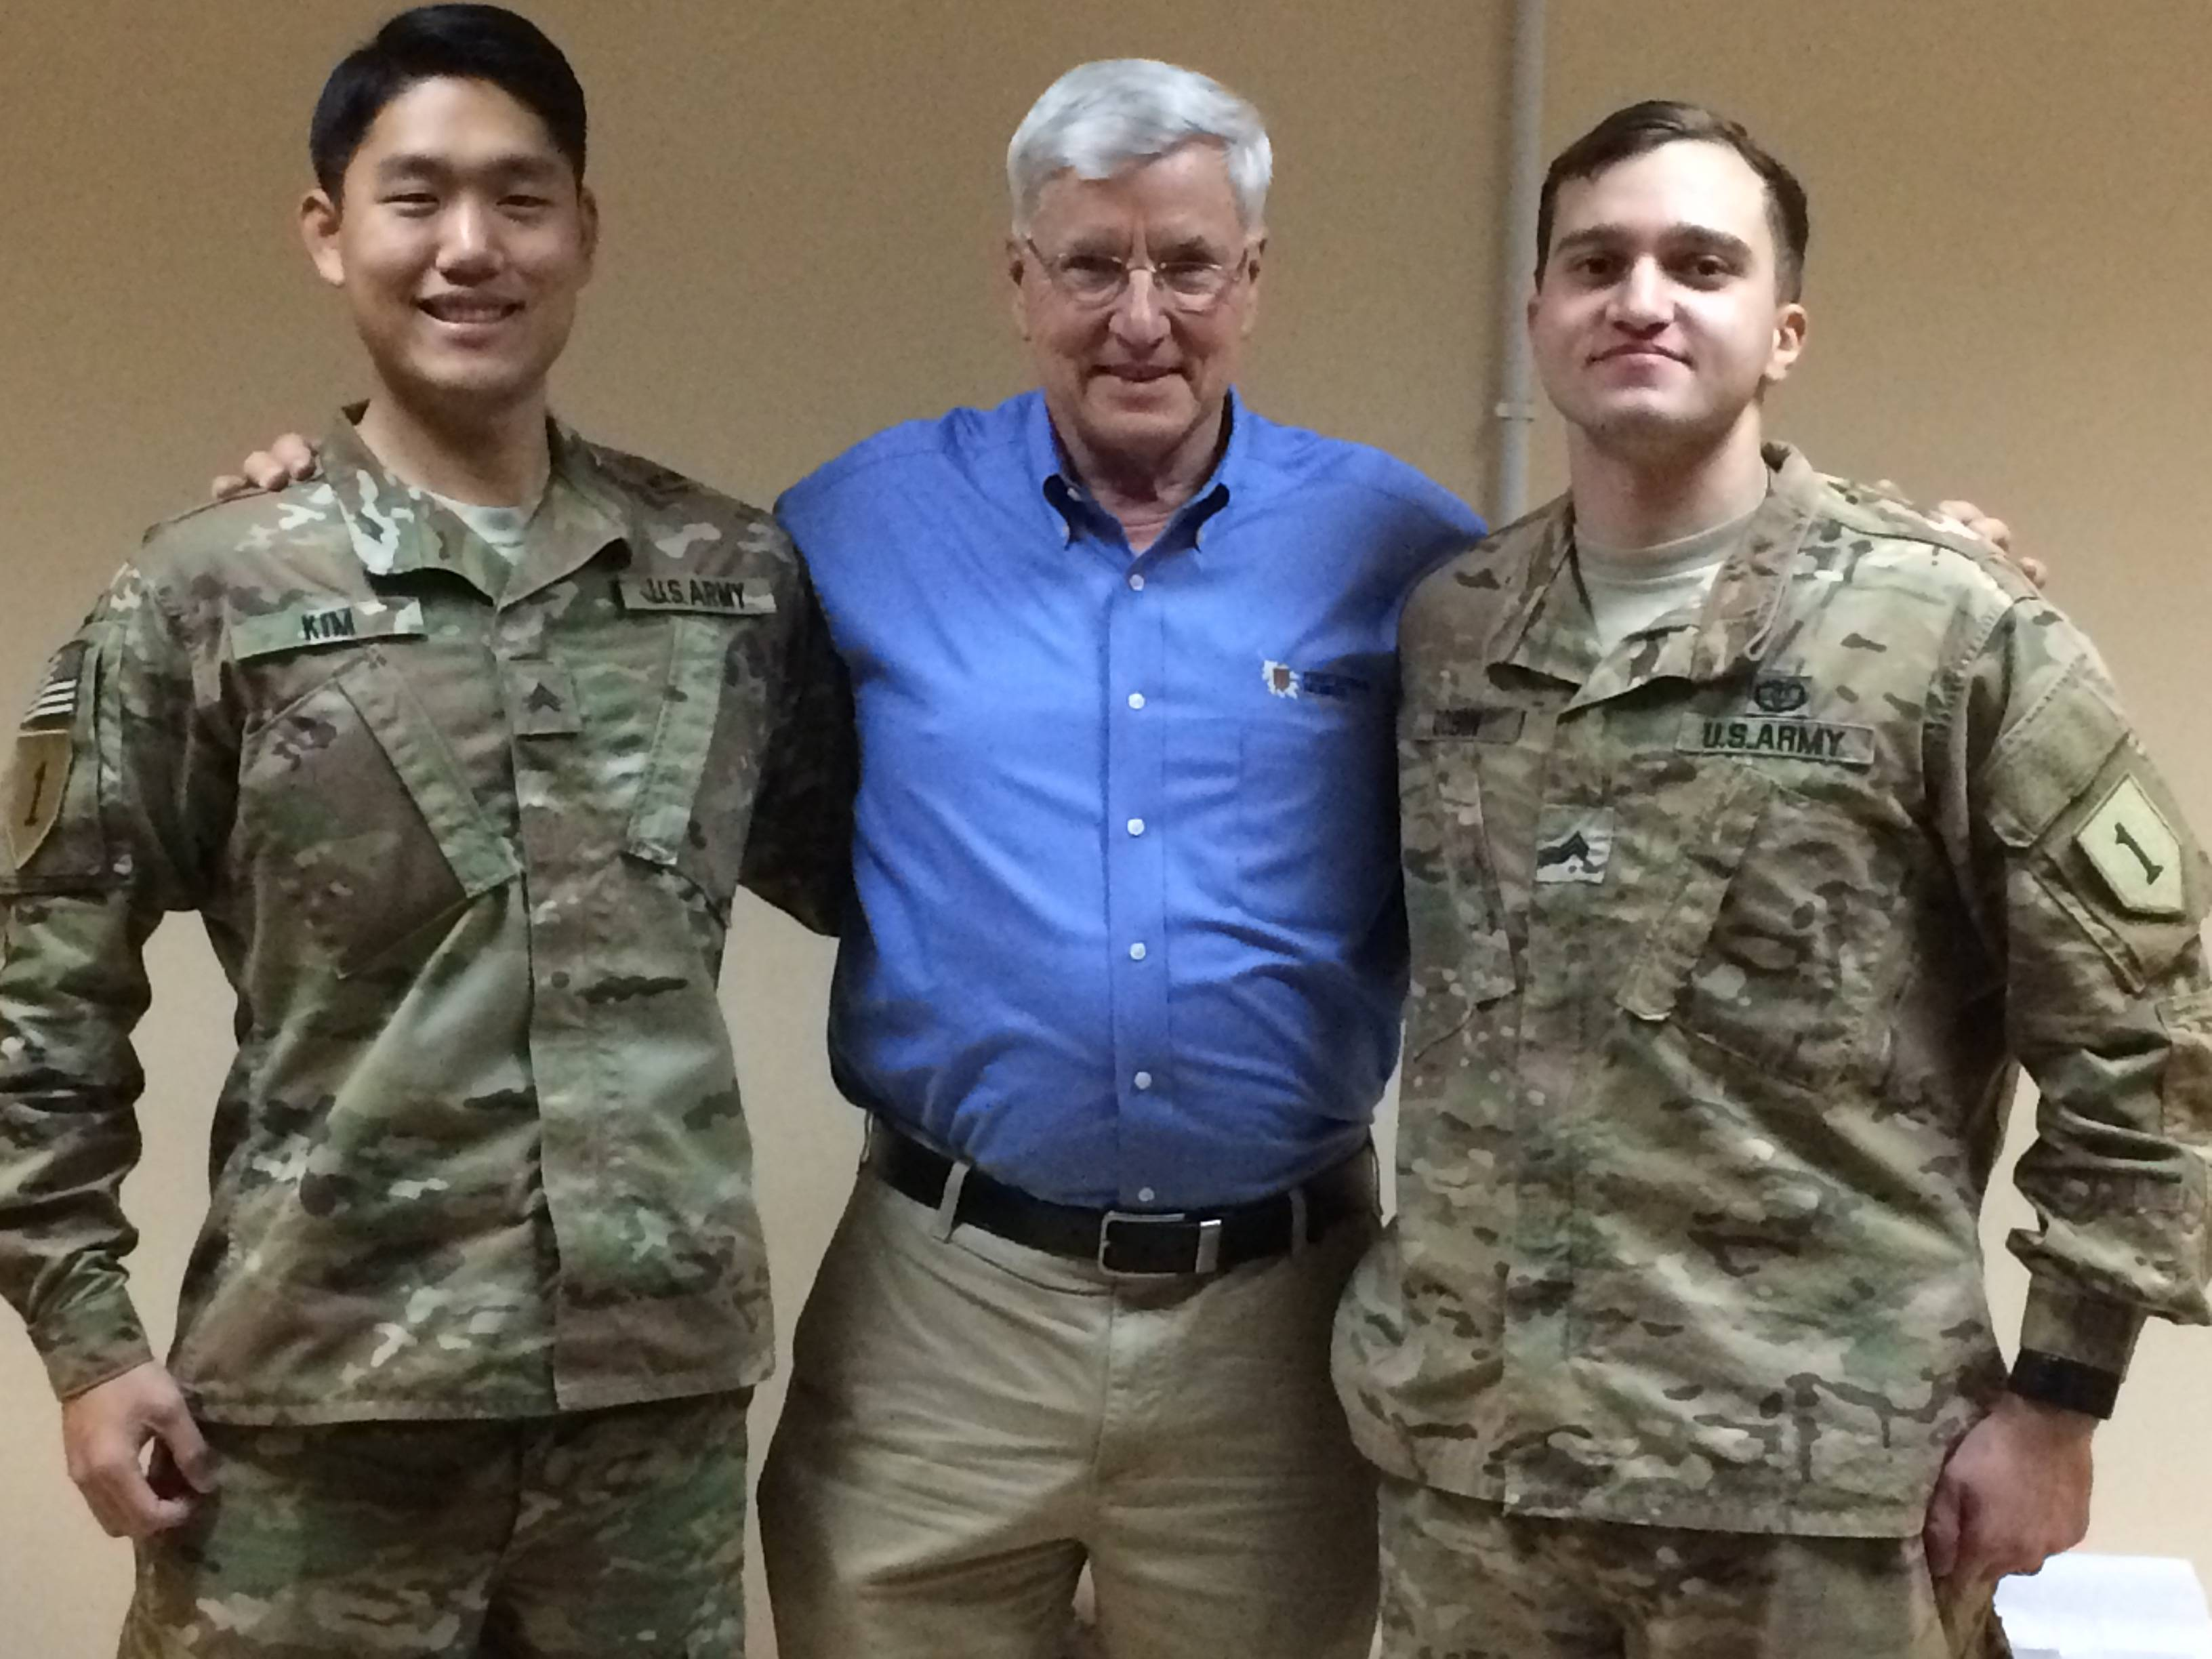 First Division Museum Director Paul Herbert met with Sgts. Christian Kim, left, of Deerfield and Vladislov Dobin of Lake Zurich.